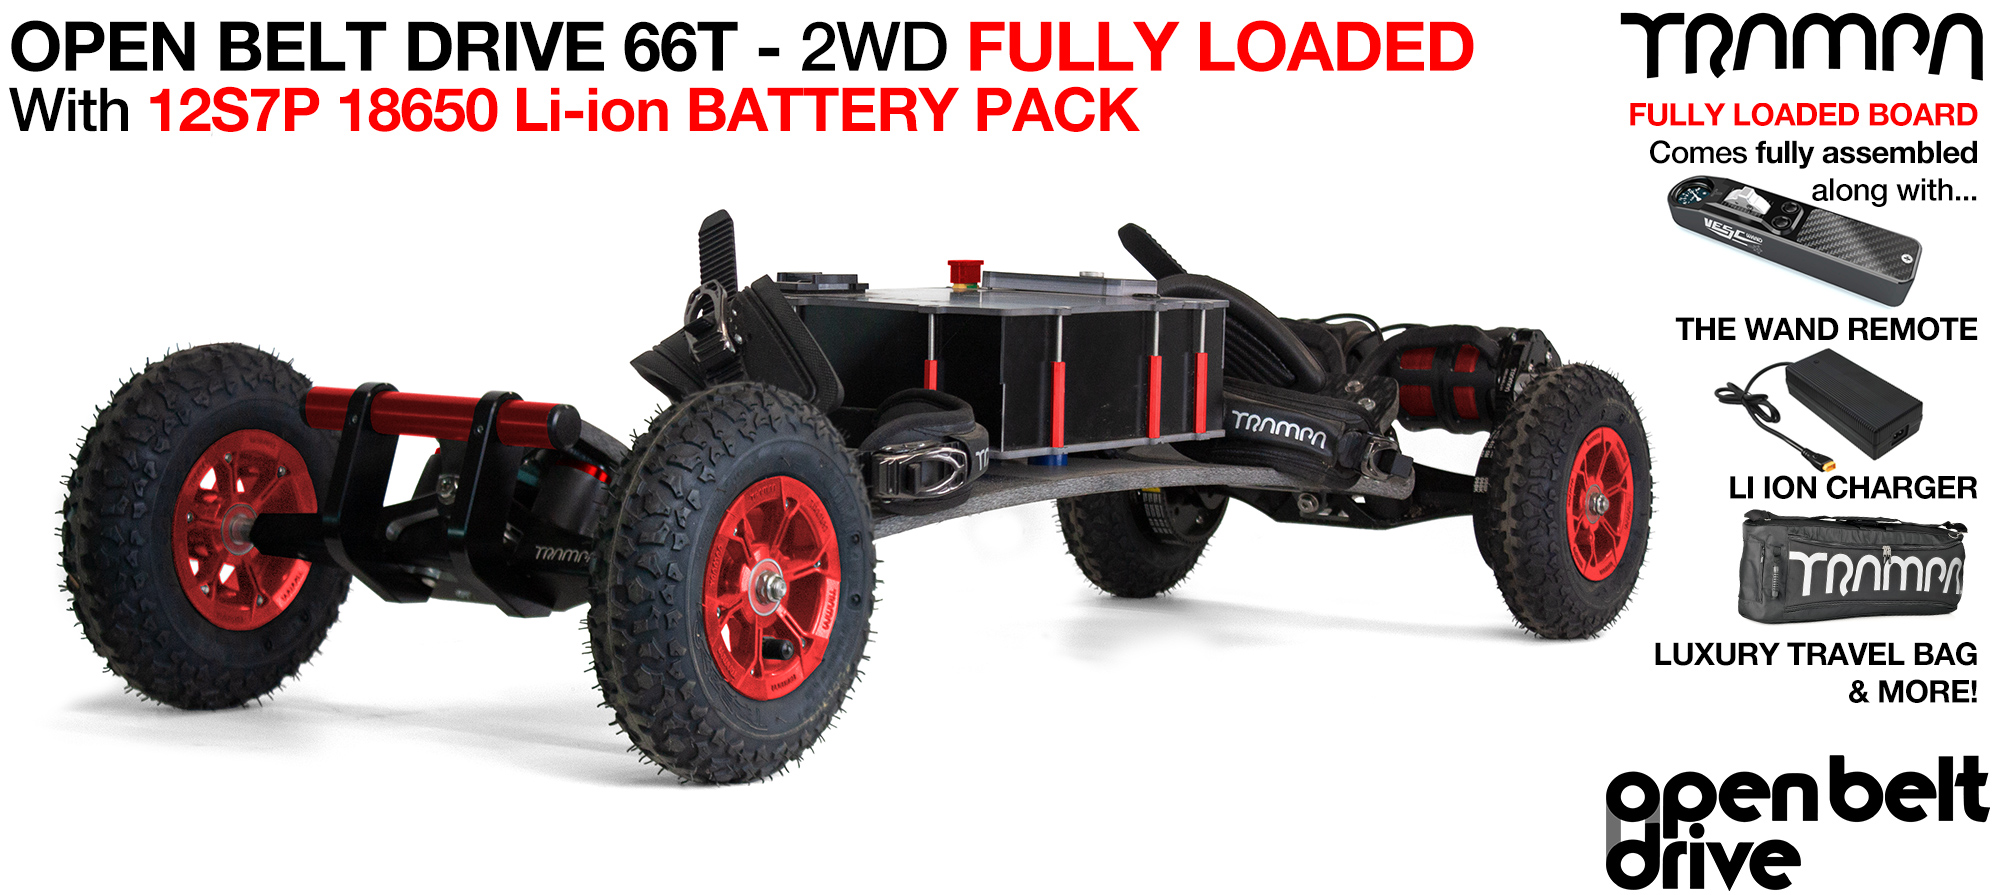 OPEN BELT DRIVE Electric Mountainboard with MONSTER Box with 8 or 9 inch Wheels & Twin Motor - LOADED CELL Pack